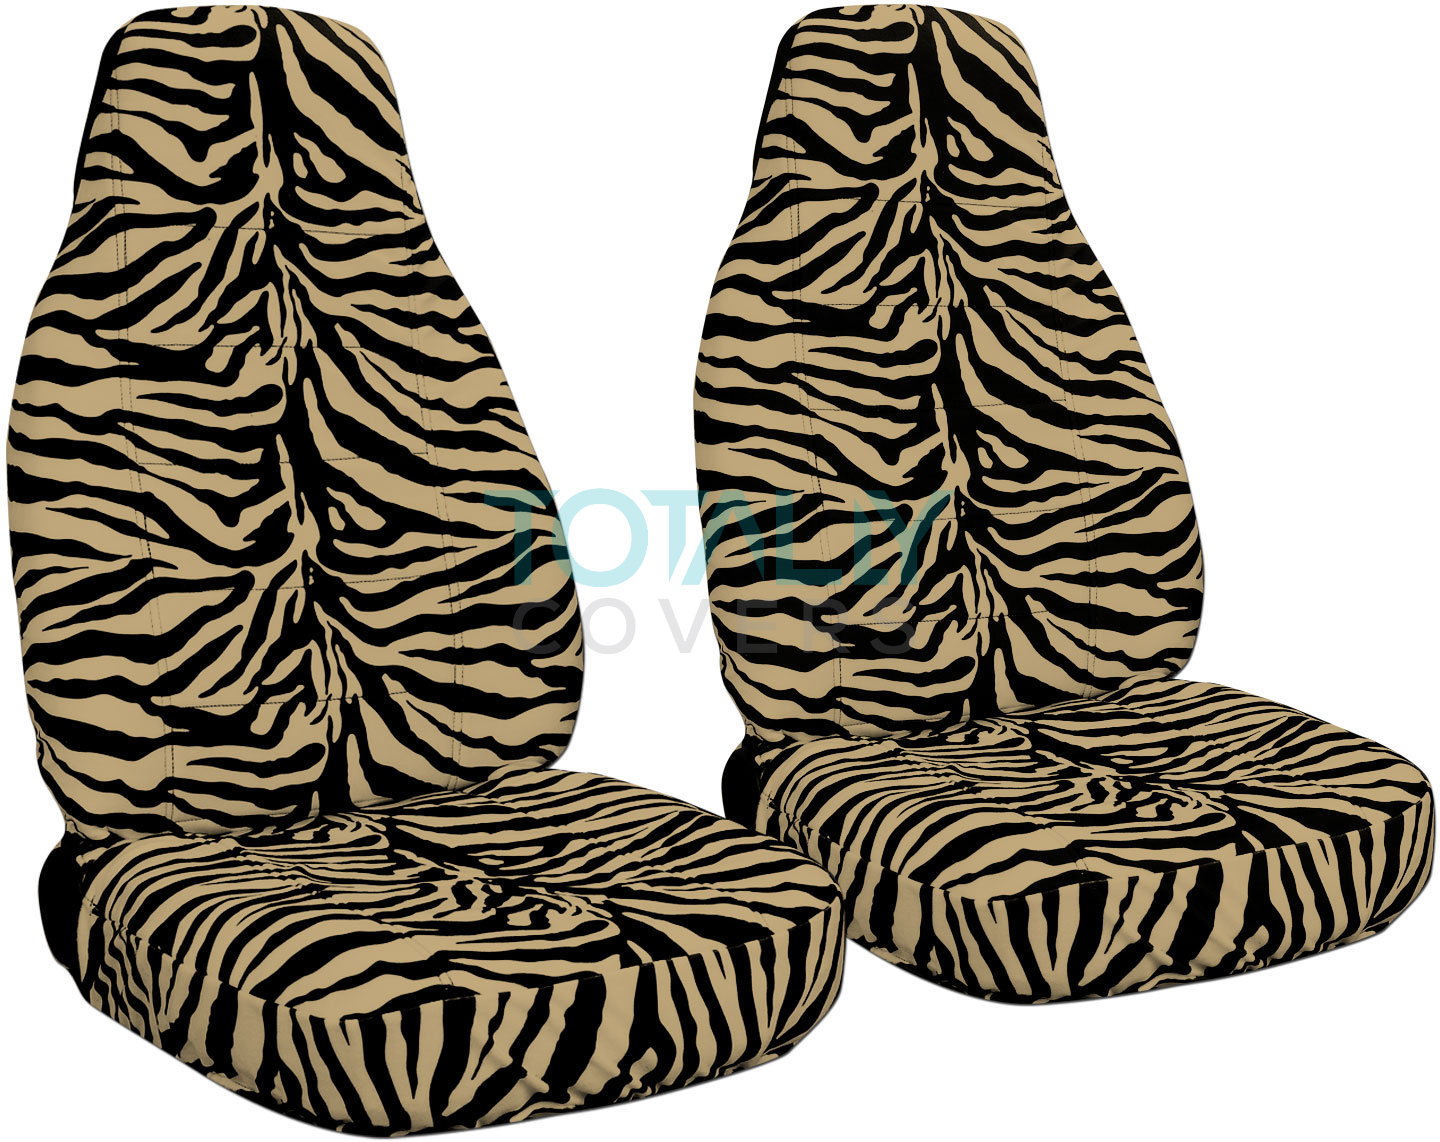 Surprising Zebra Print Seat Covers For Cars Machost Co Dining Chair Design Ideas Machostcouk